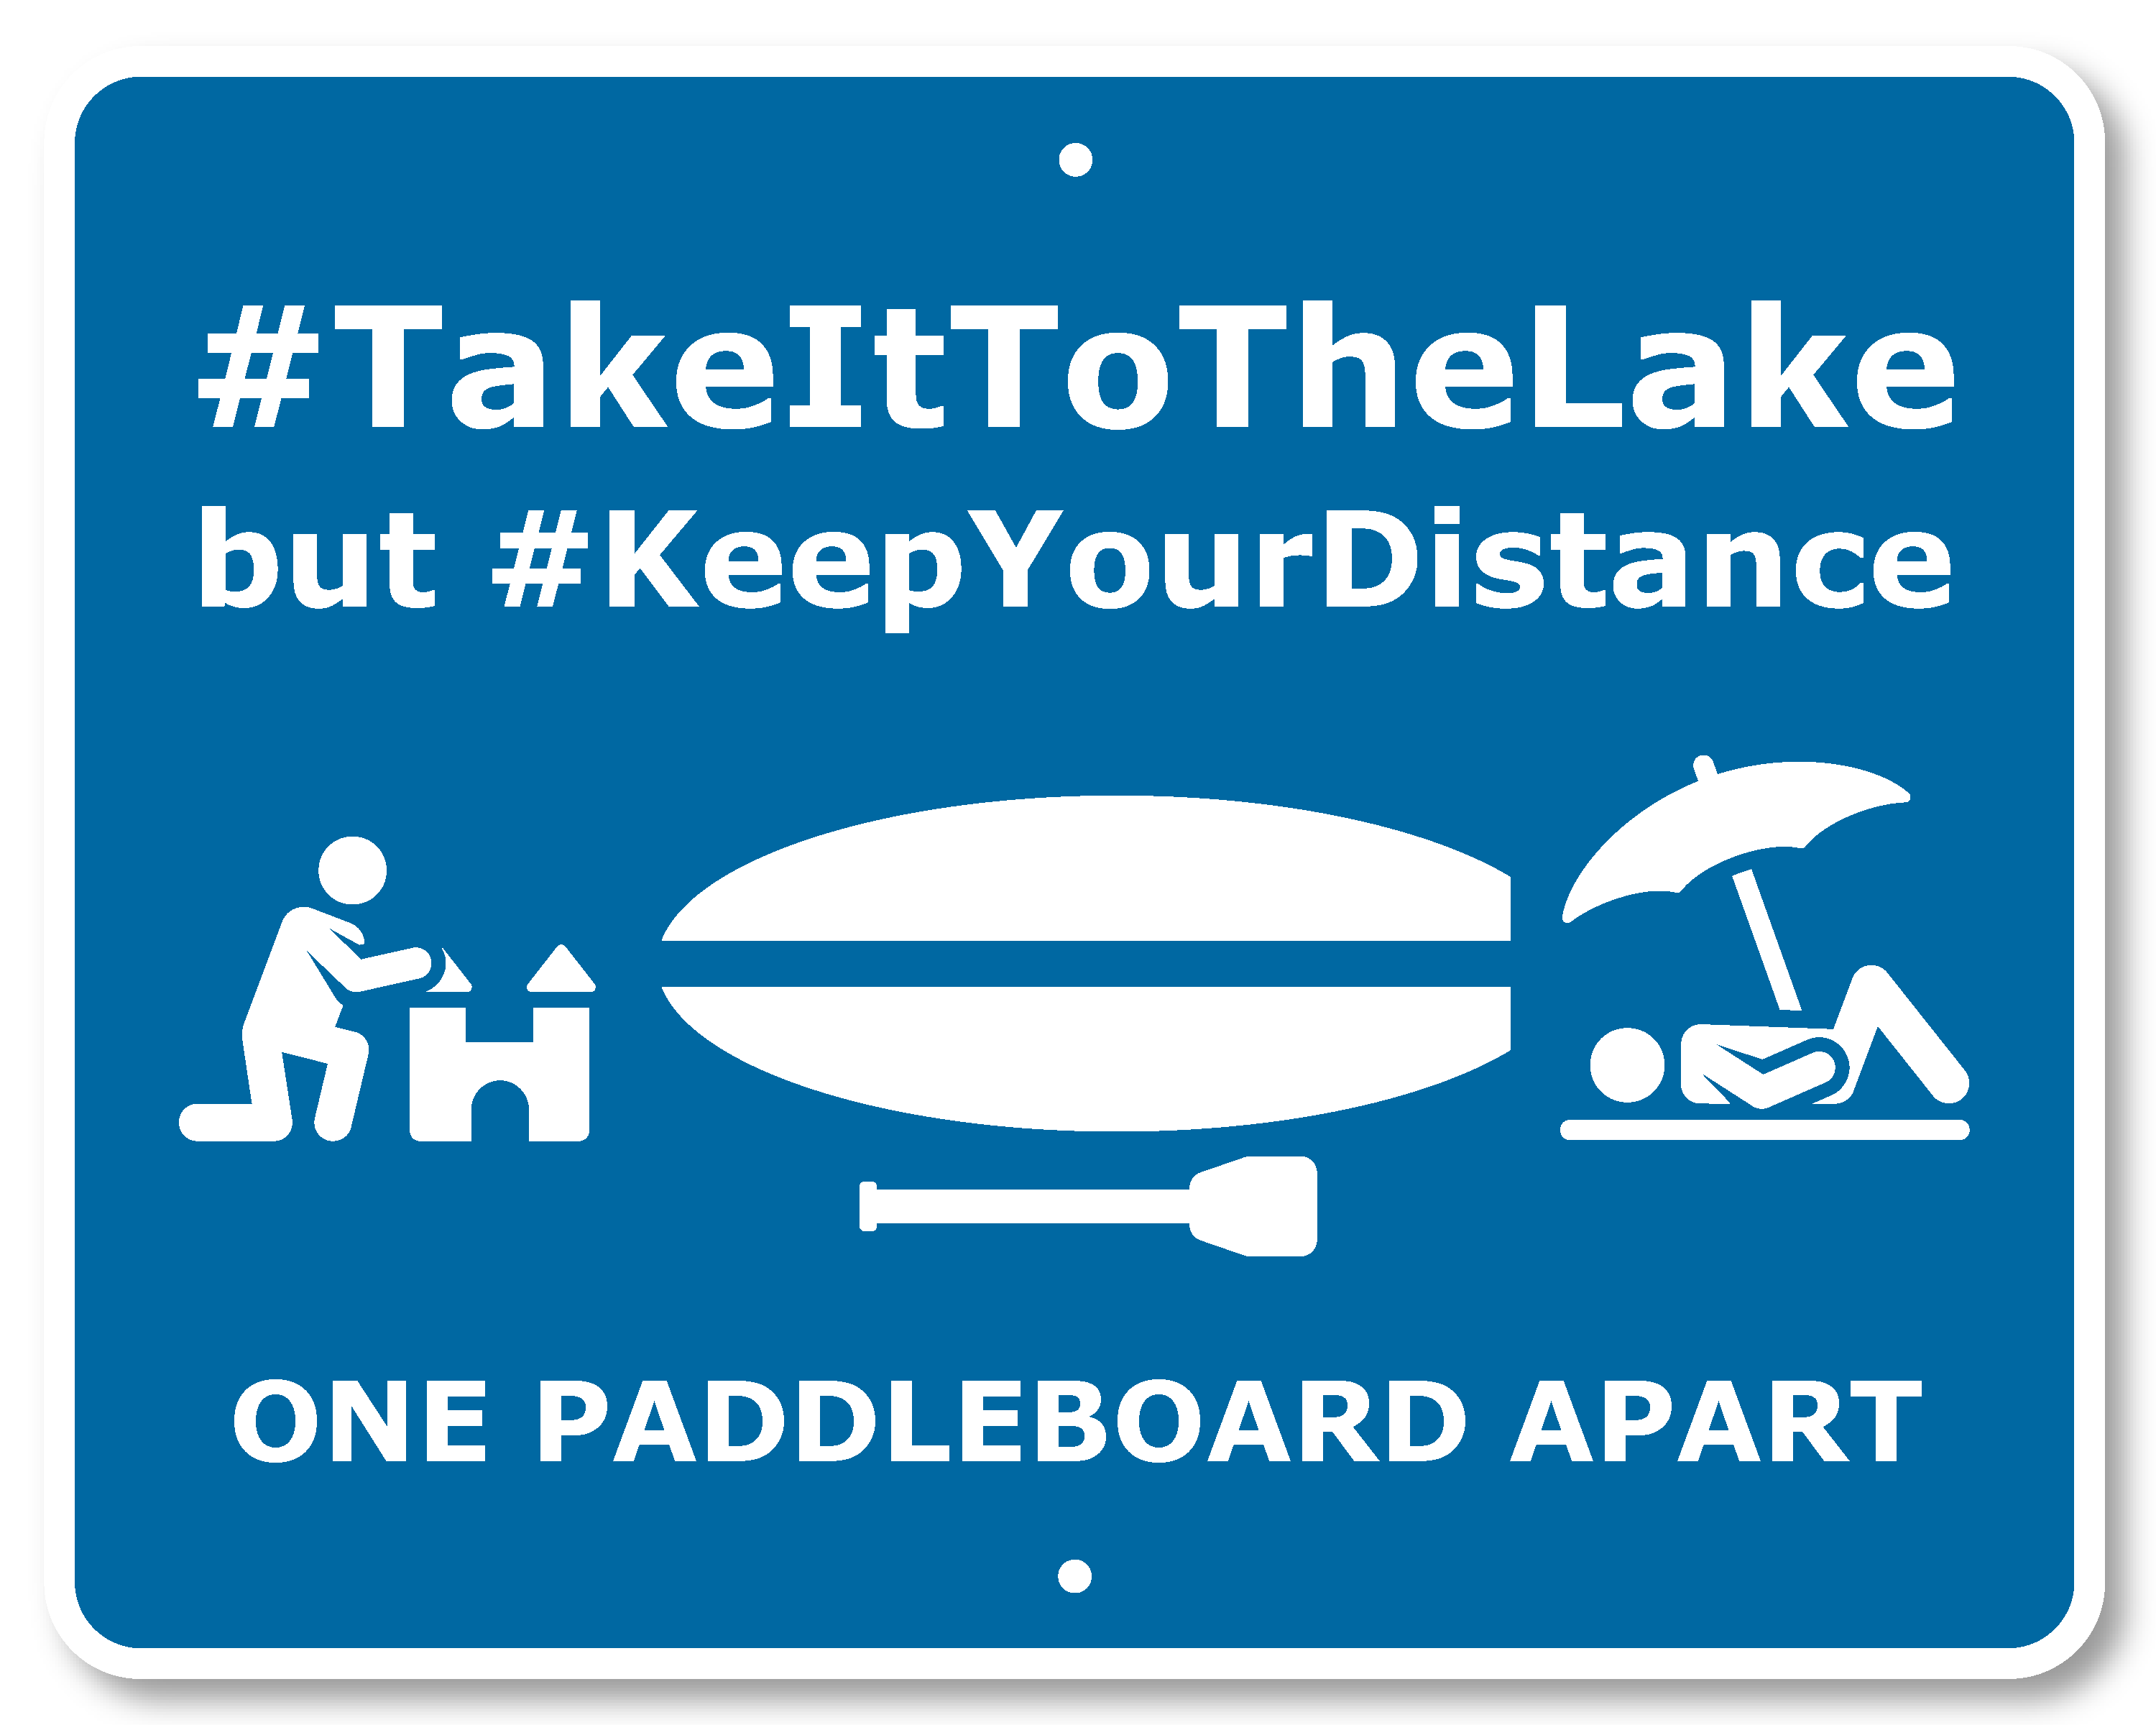 Take it to the Lake Social Distancing Paddleboard